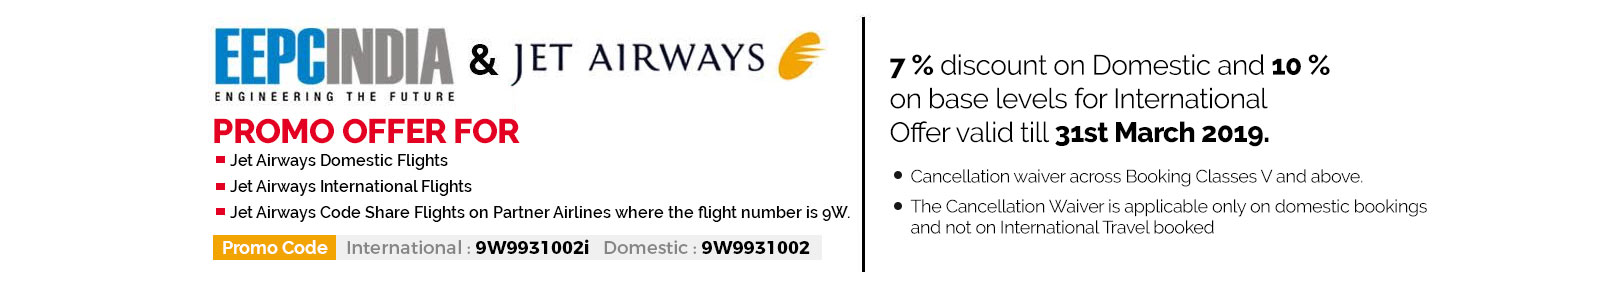 EEPC India Jet Airways Promo Offer